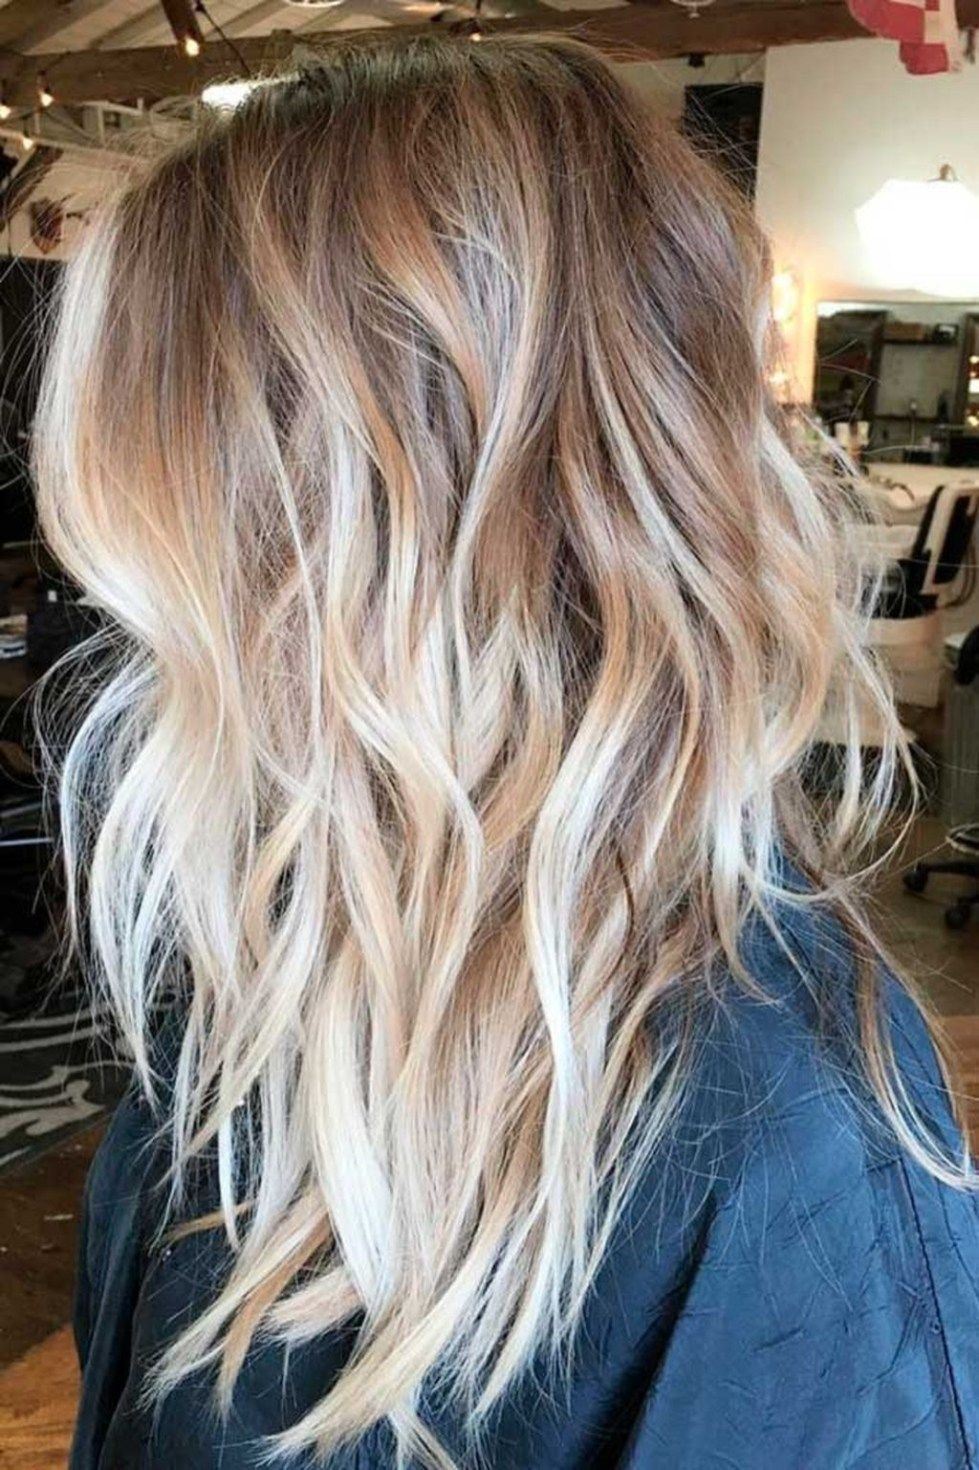 72 stunning fall hair color ideas 2017 trends | hair coloring and